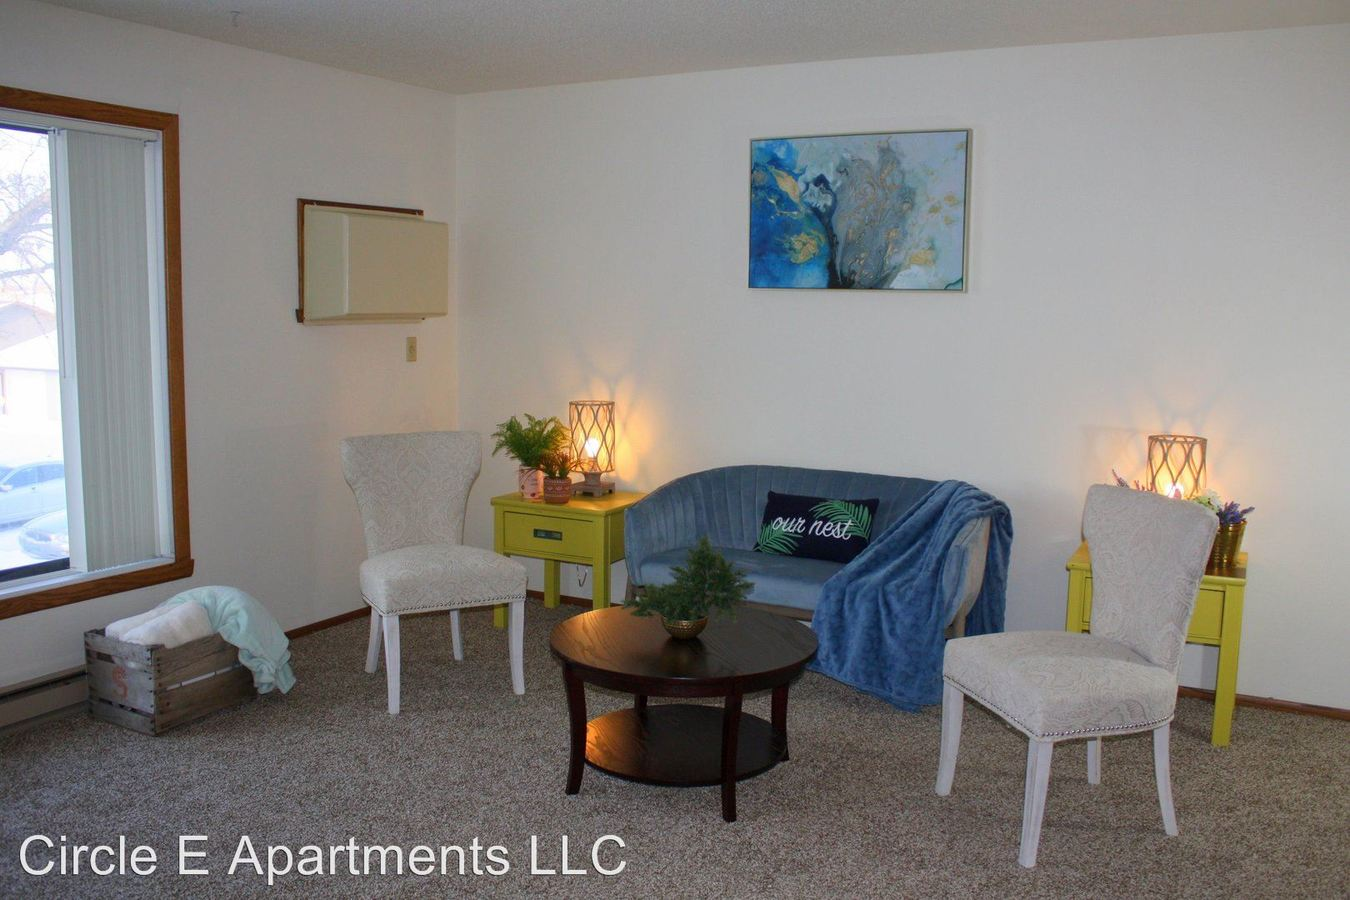 2 Bedrooms 1 Bathroom Apartment for rent at Circle E in Fargo, ND